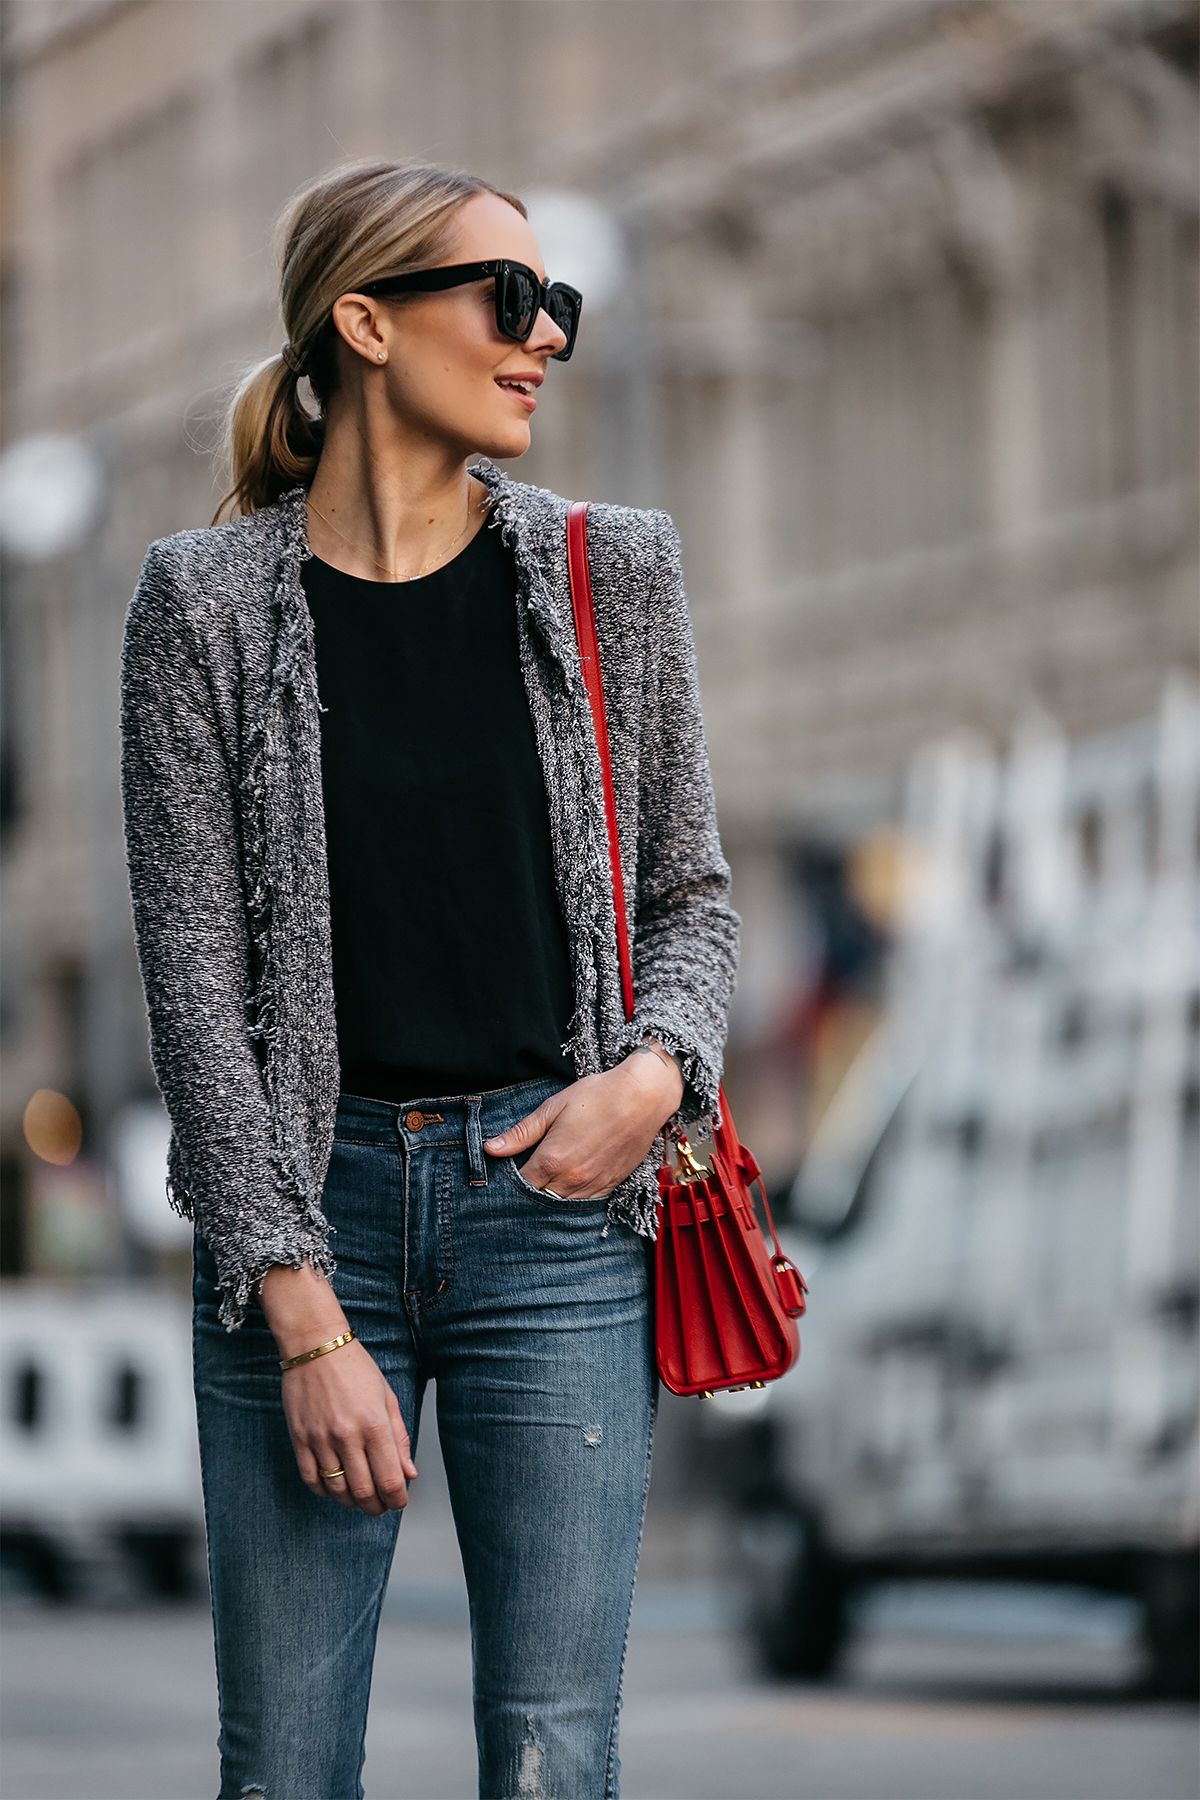 Blonde Woman Wearing IRO Shavanix Grey Tweed Jacket Black Top Denim Ripped Skinny Jeans Red Handbag Fashion Jackson Dallas Blogger Fashion Blogger Street Style